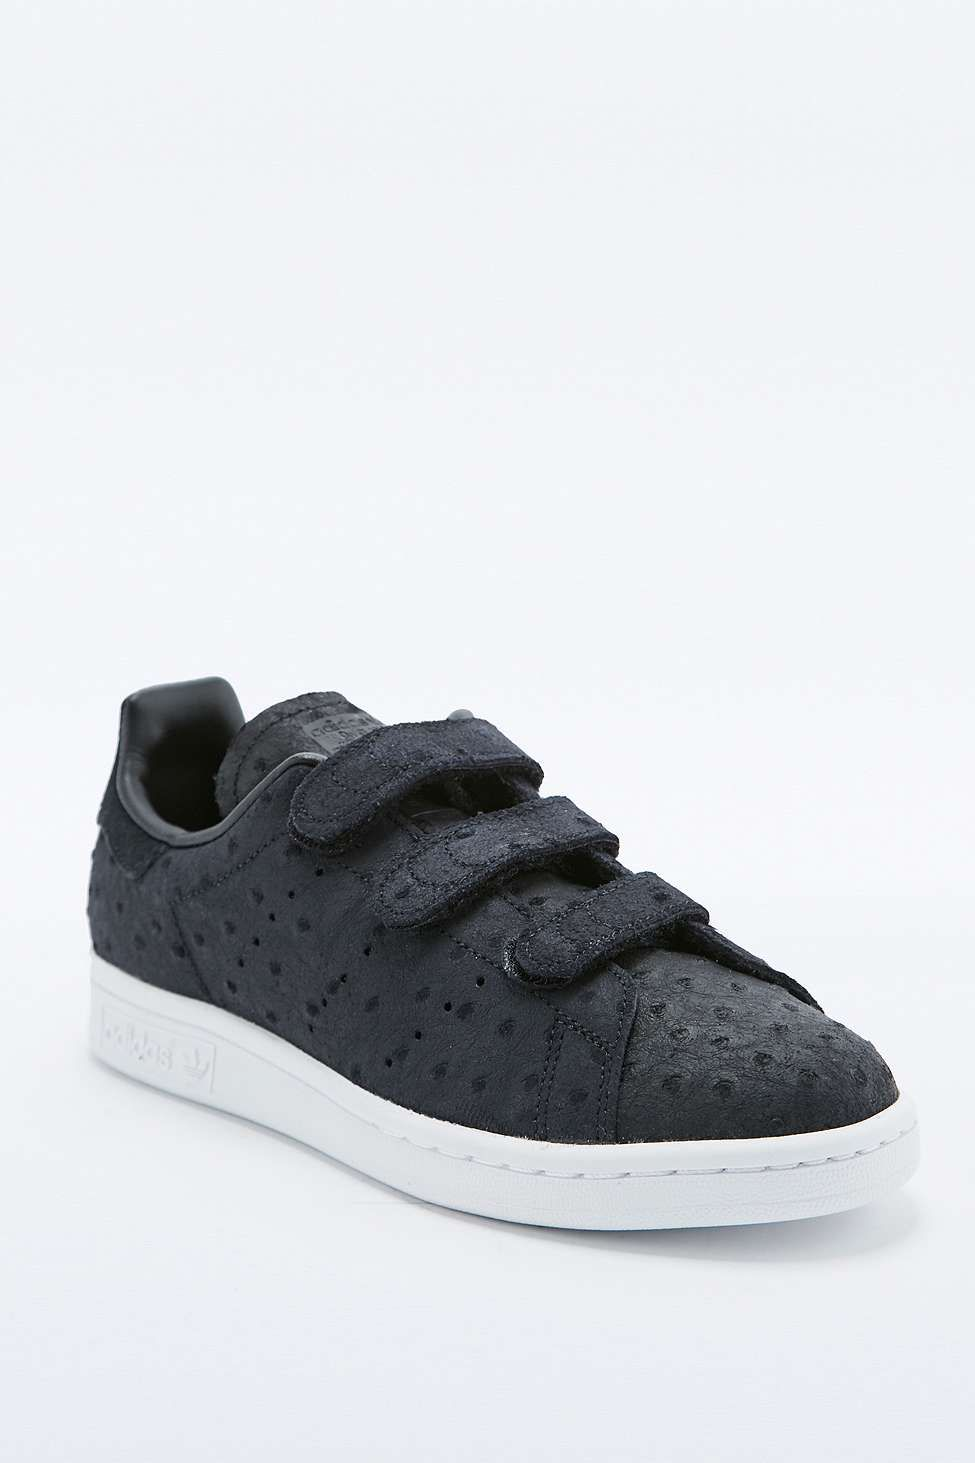 adidas Originals Stan Smith Textured Black Hook and Loop ...